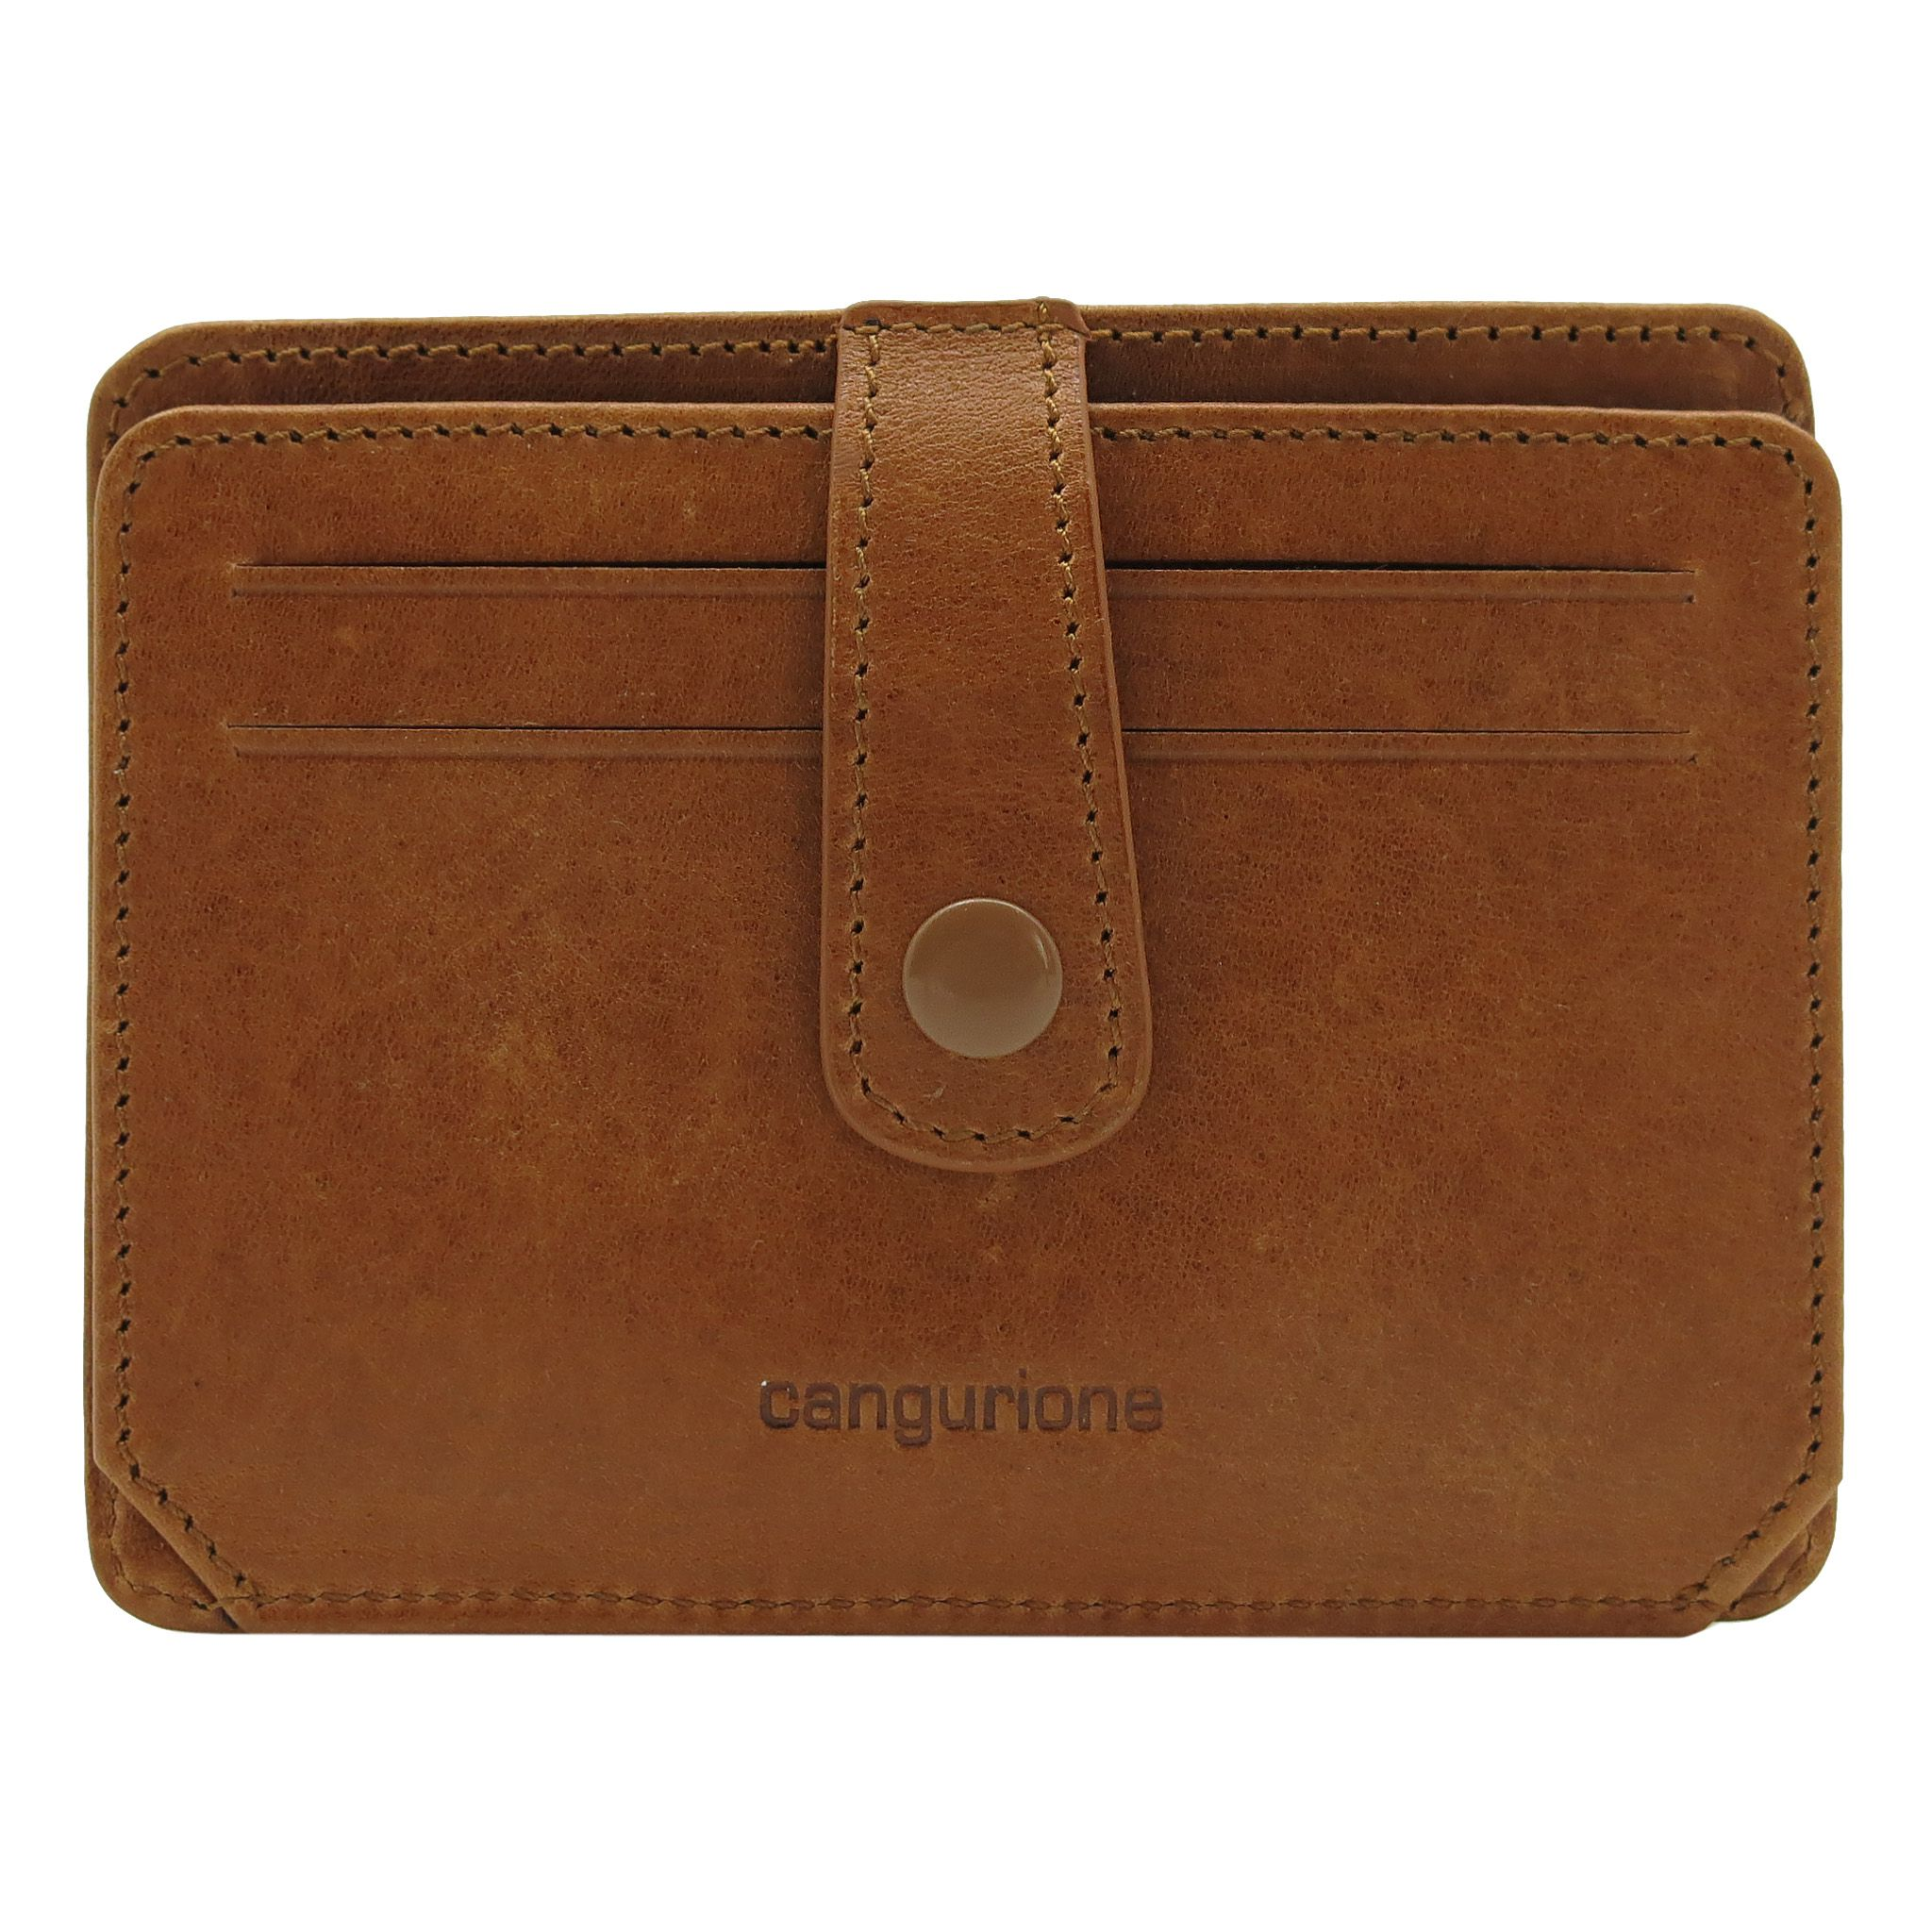 handmade leather accessories brown